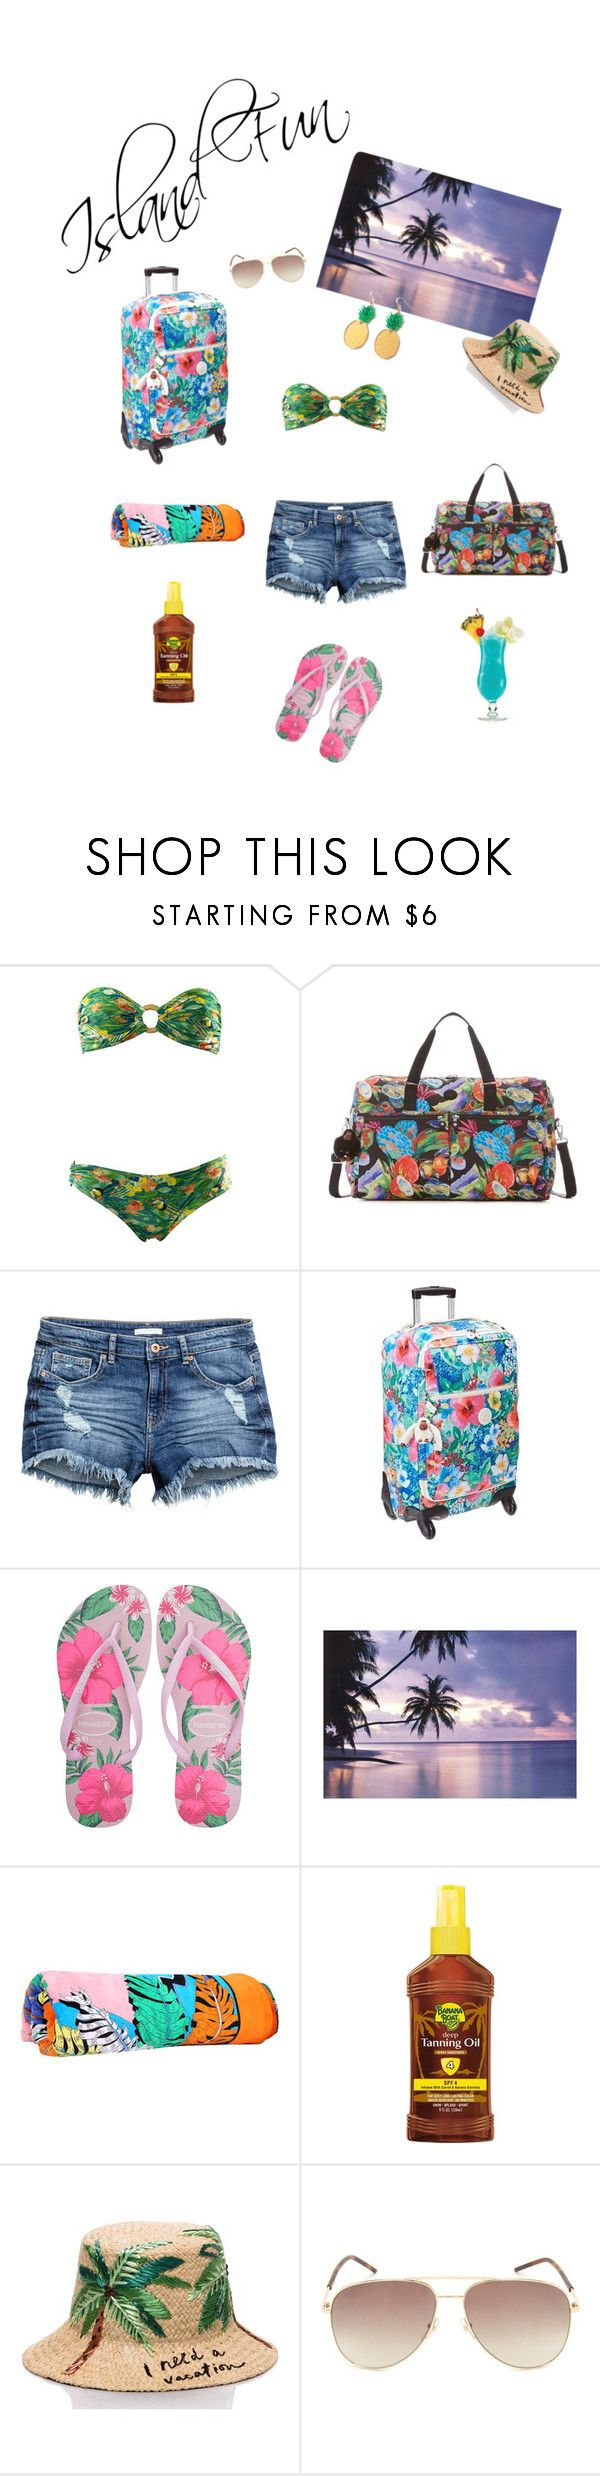 """""""Island Fun - By DreamCloset"""" by dreamclosetx4 ❤ liked on Polyvore featuring Kipling, Havaianas, Emilio Pucci, Banana Boat, Kate Spade, Marc Jacobs and Finest Imaginary"""